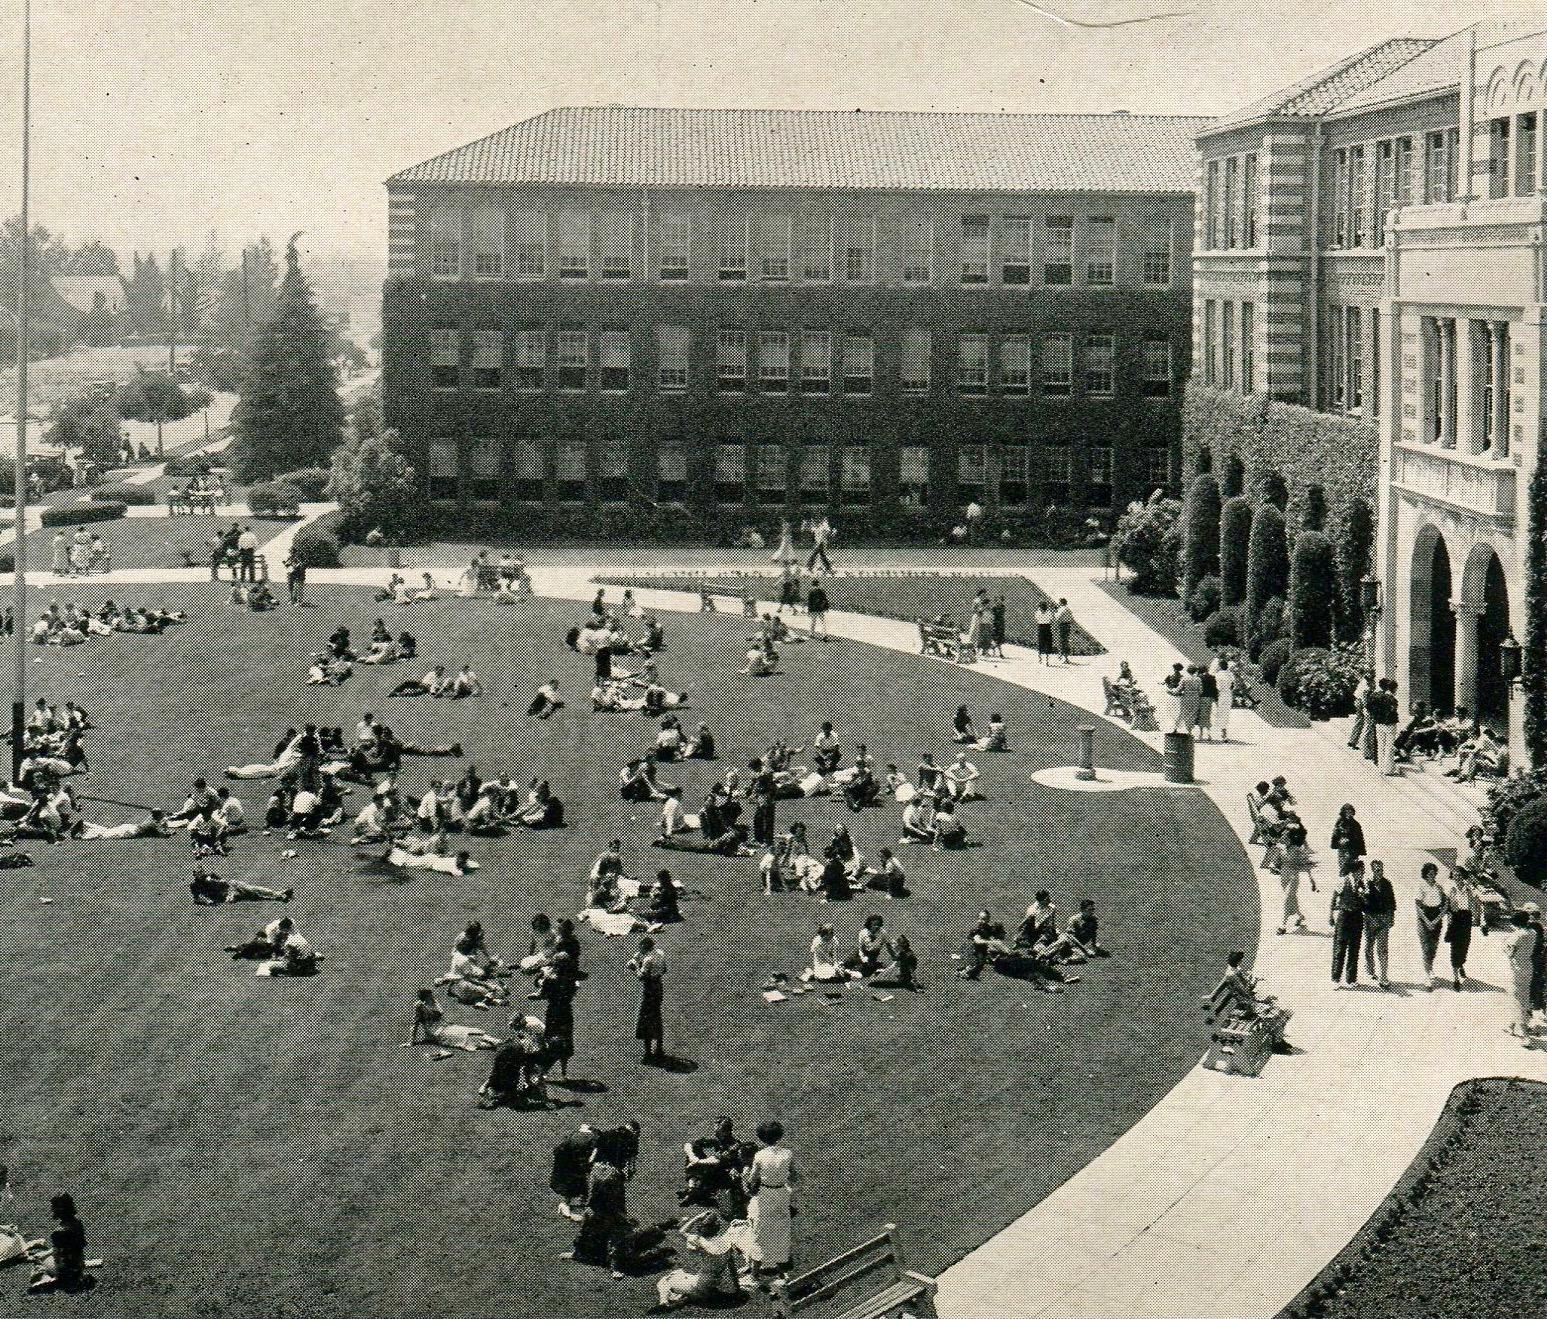 The school's front lawn 1937